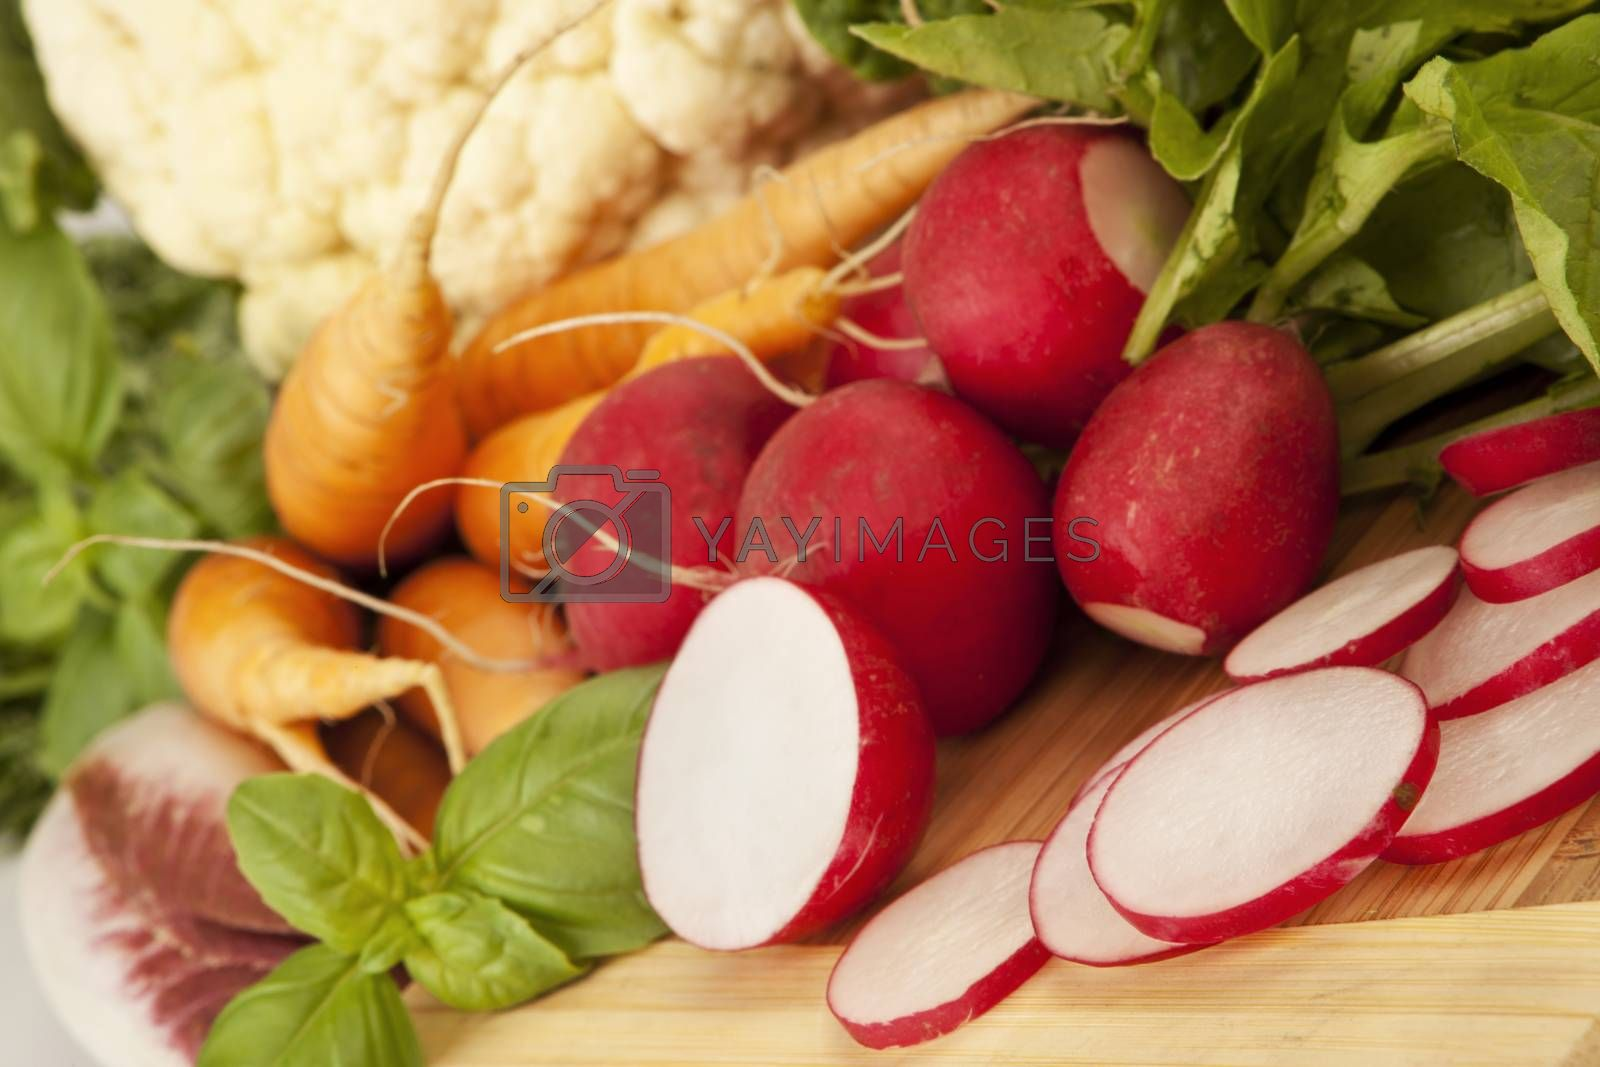 Organic vegetable carrots, cut radish, salad.